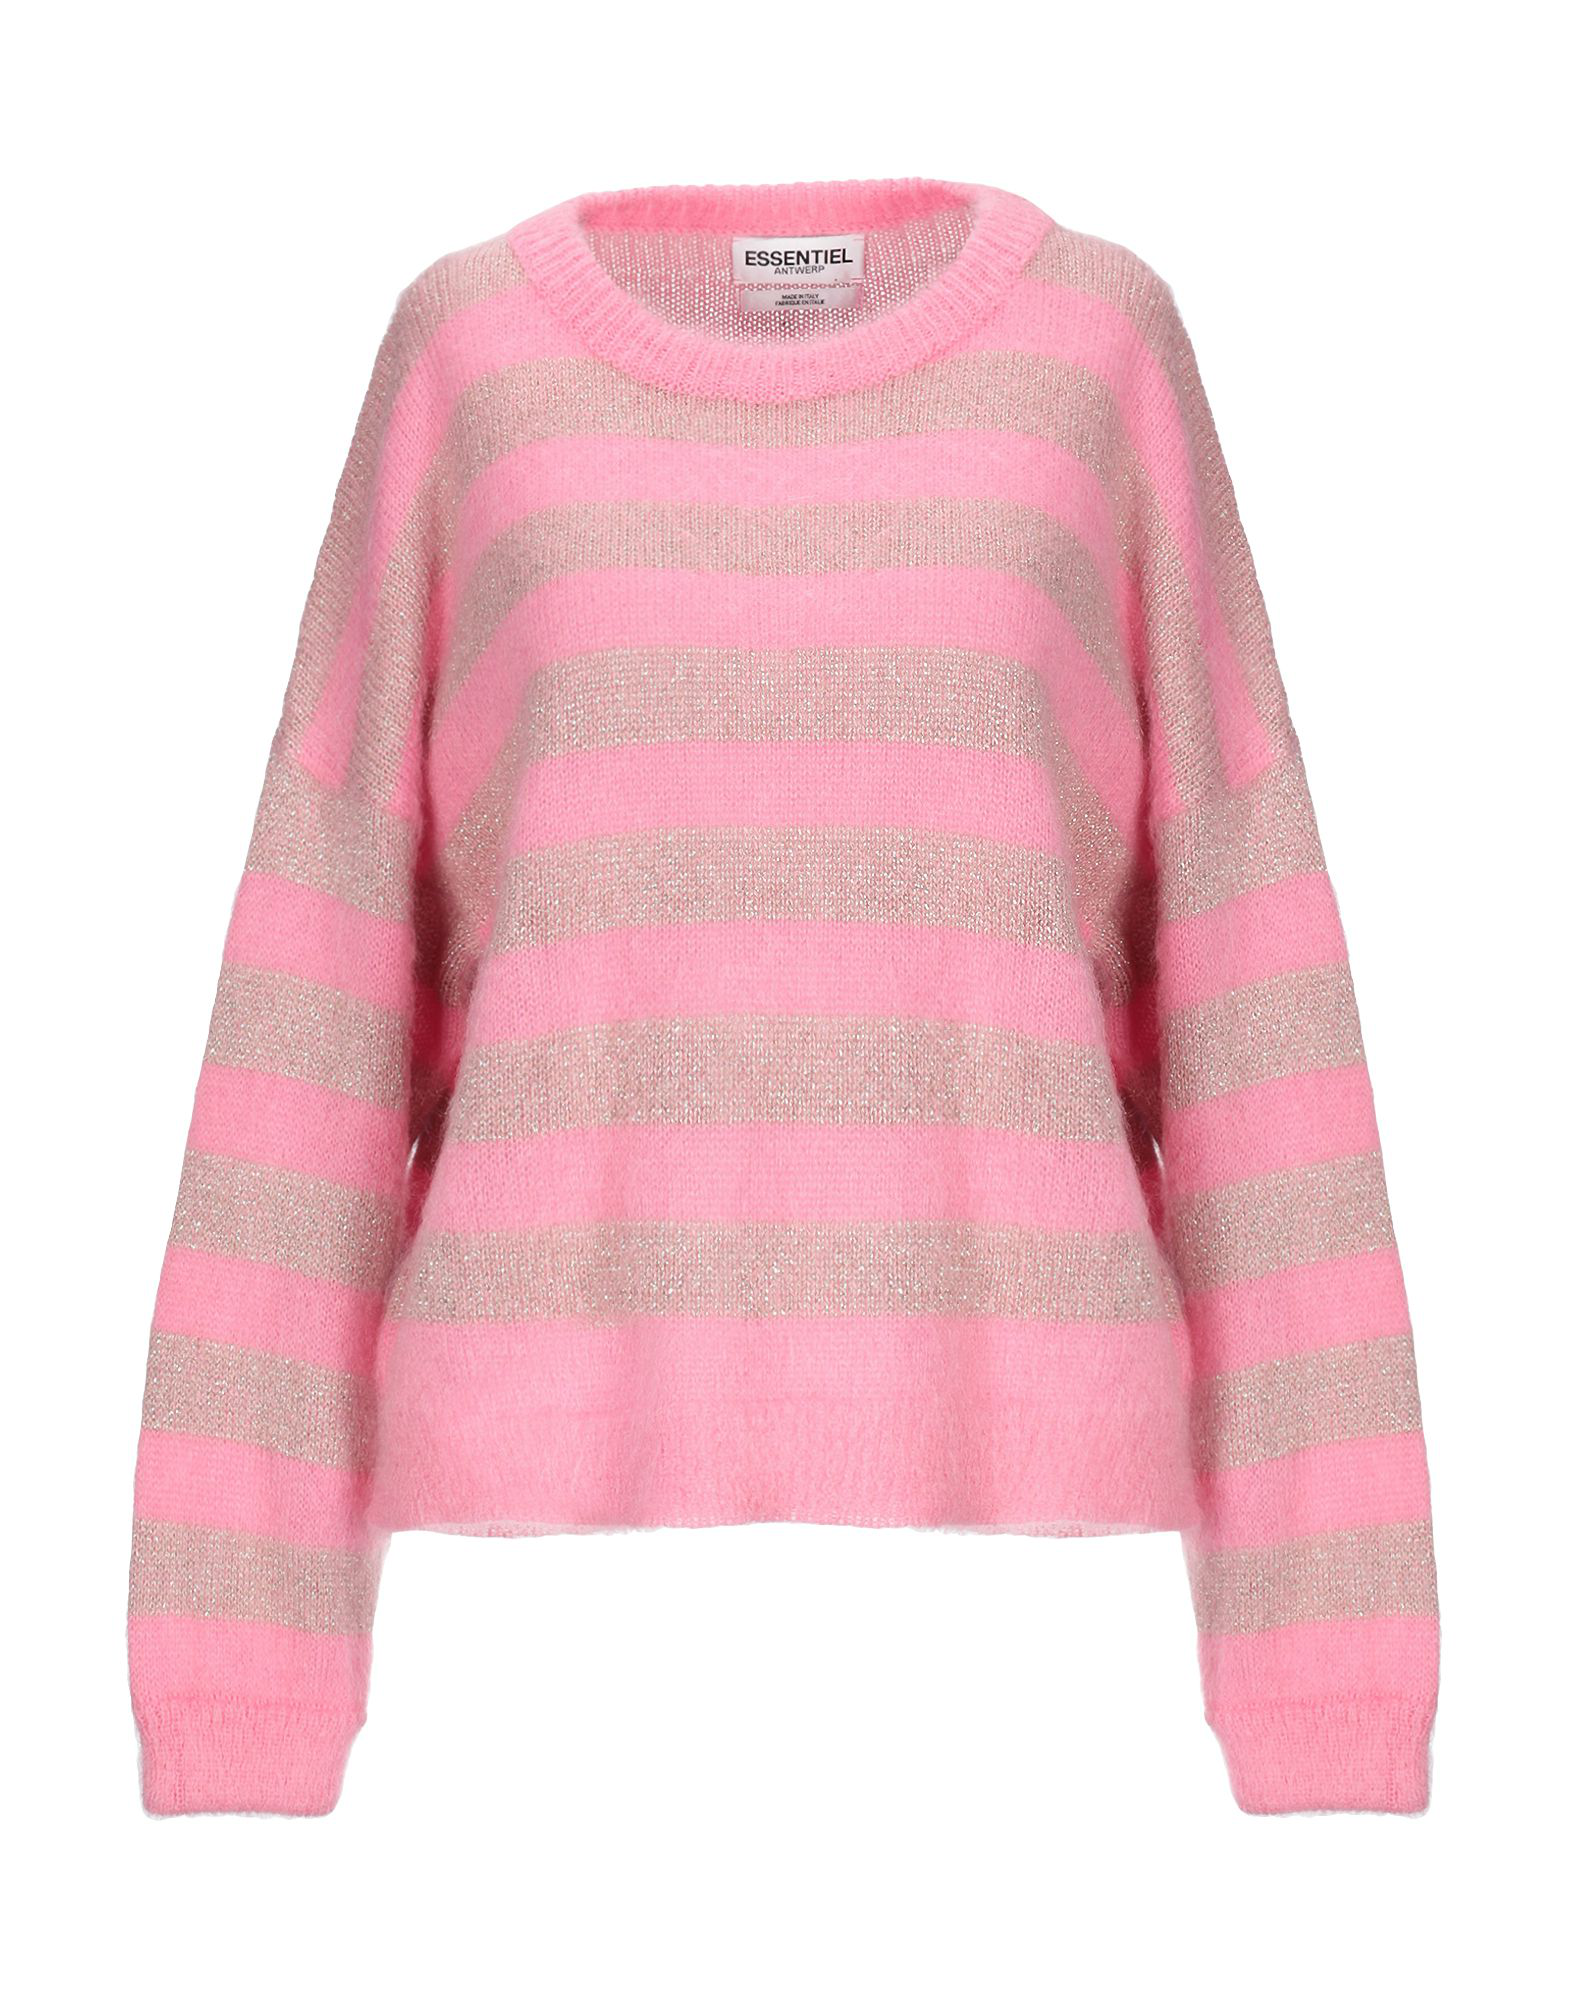 Essentiel Antwerp Sweater In Pink